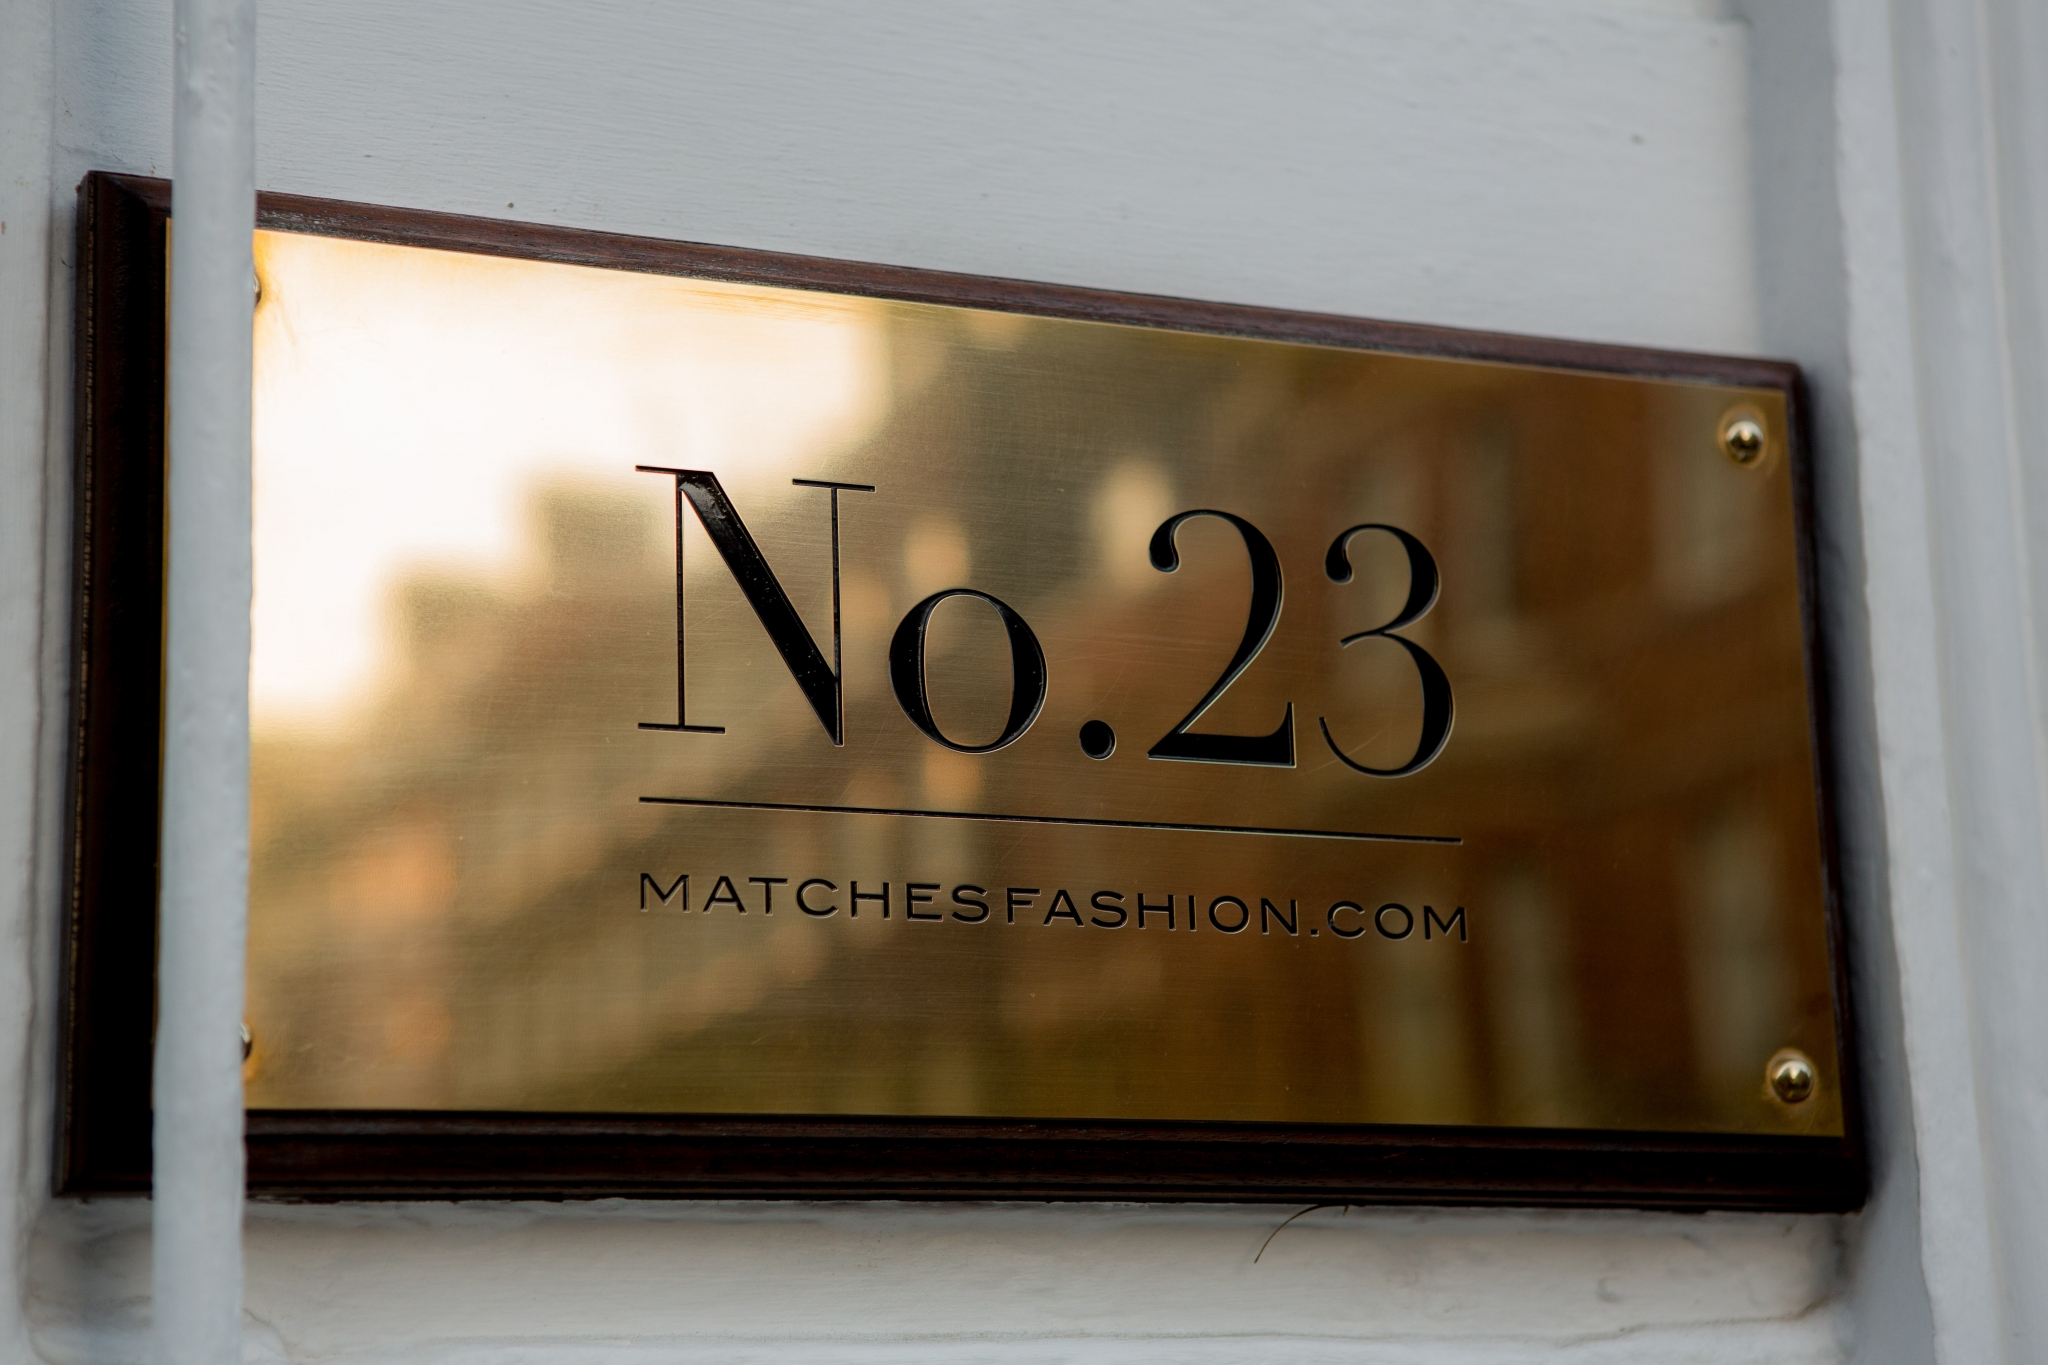 No.23 Matches Fashion